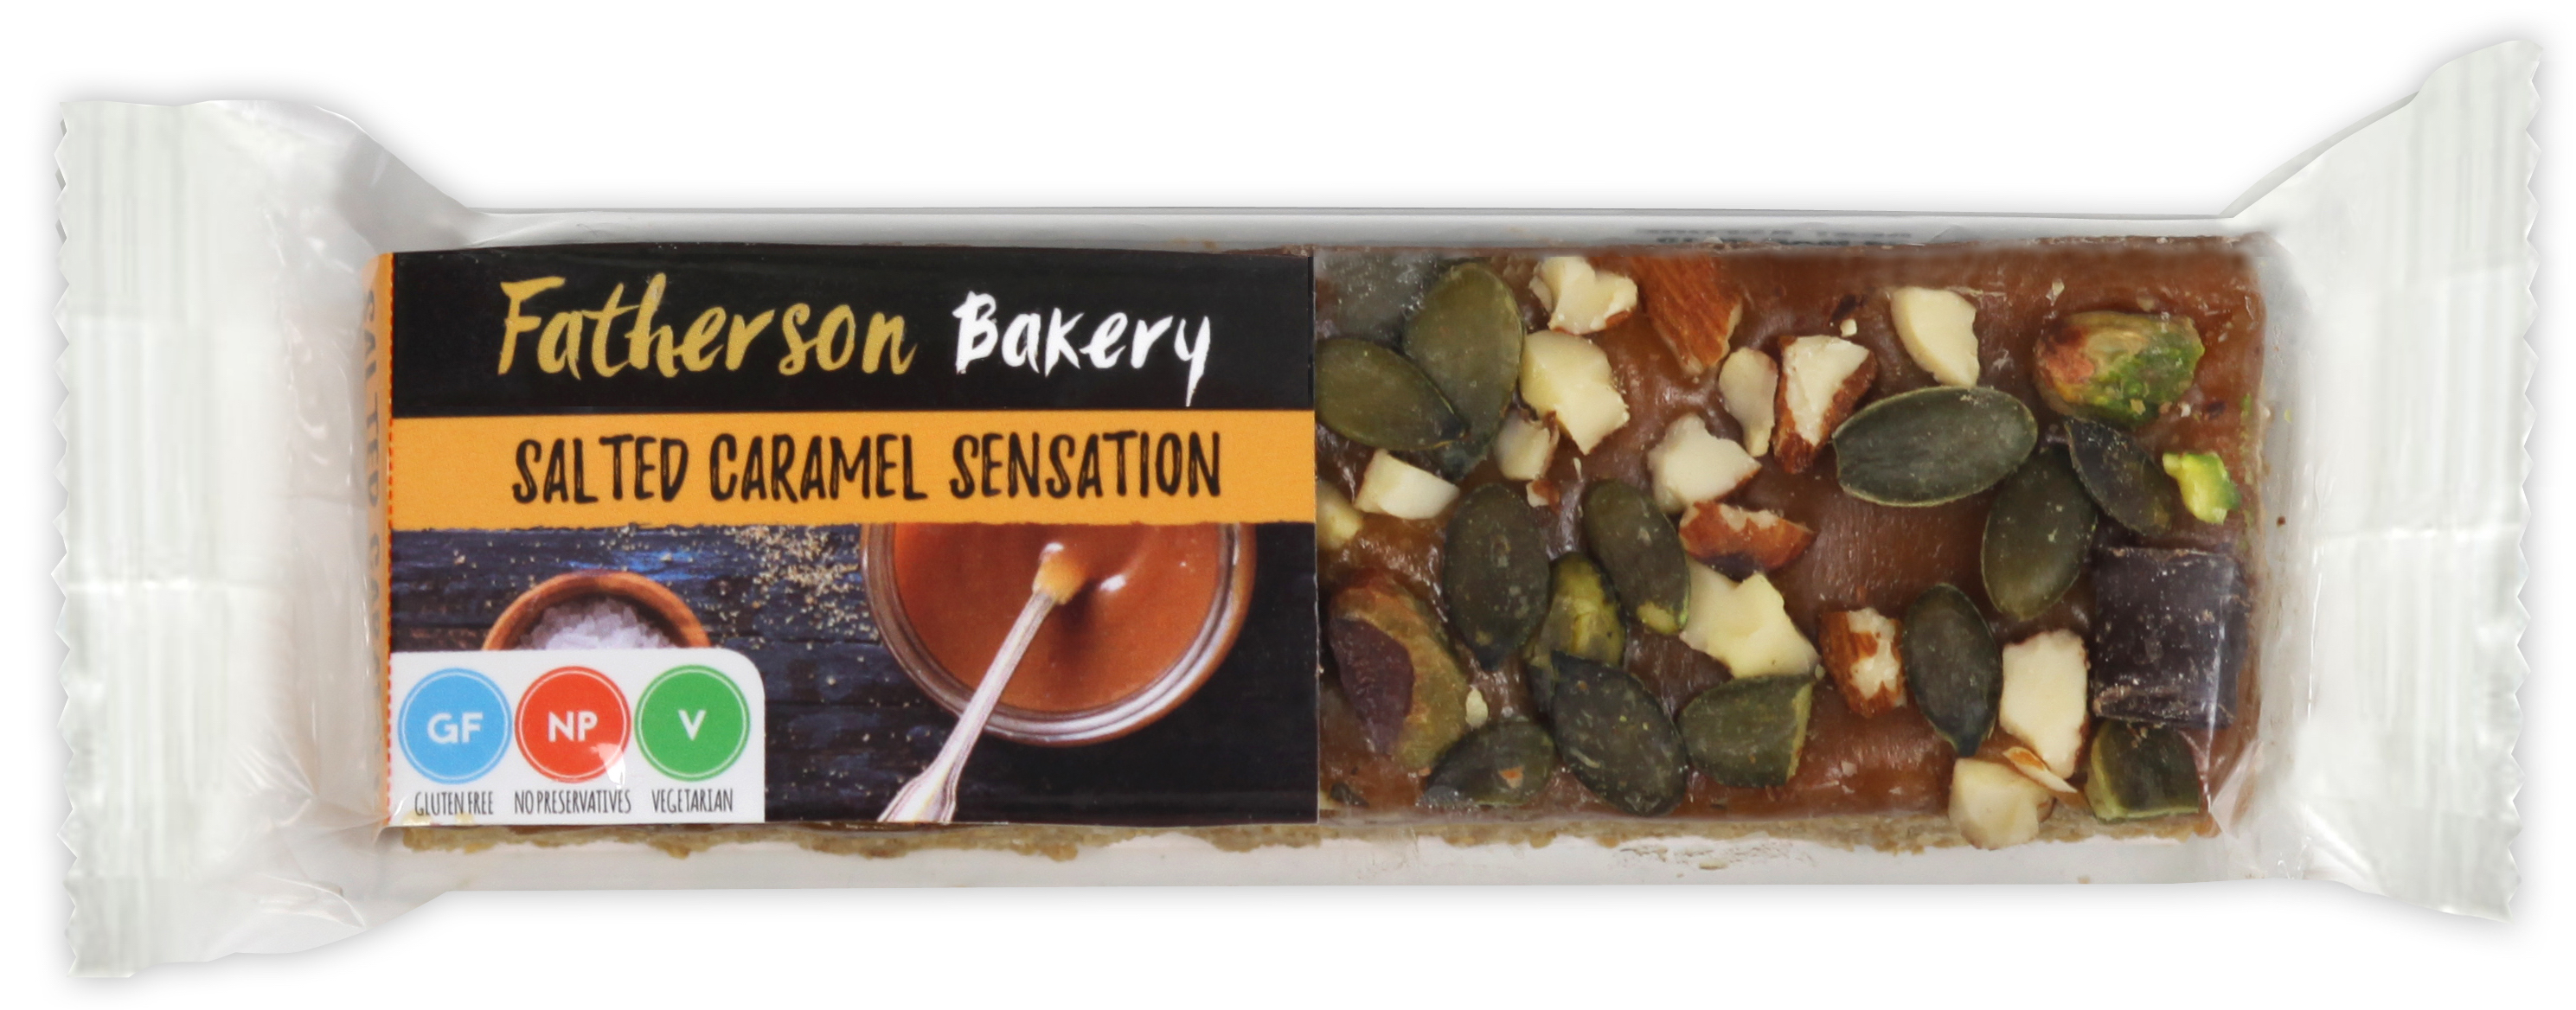 Fatherson Bakery launch new gluten-free snack bars